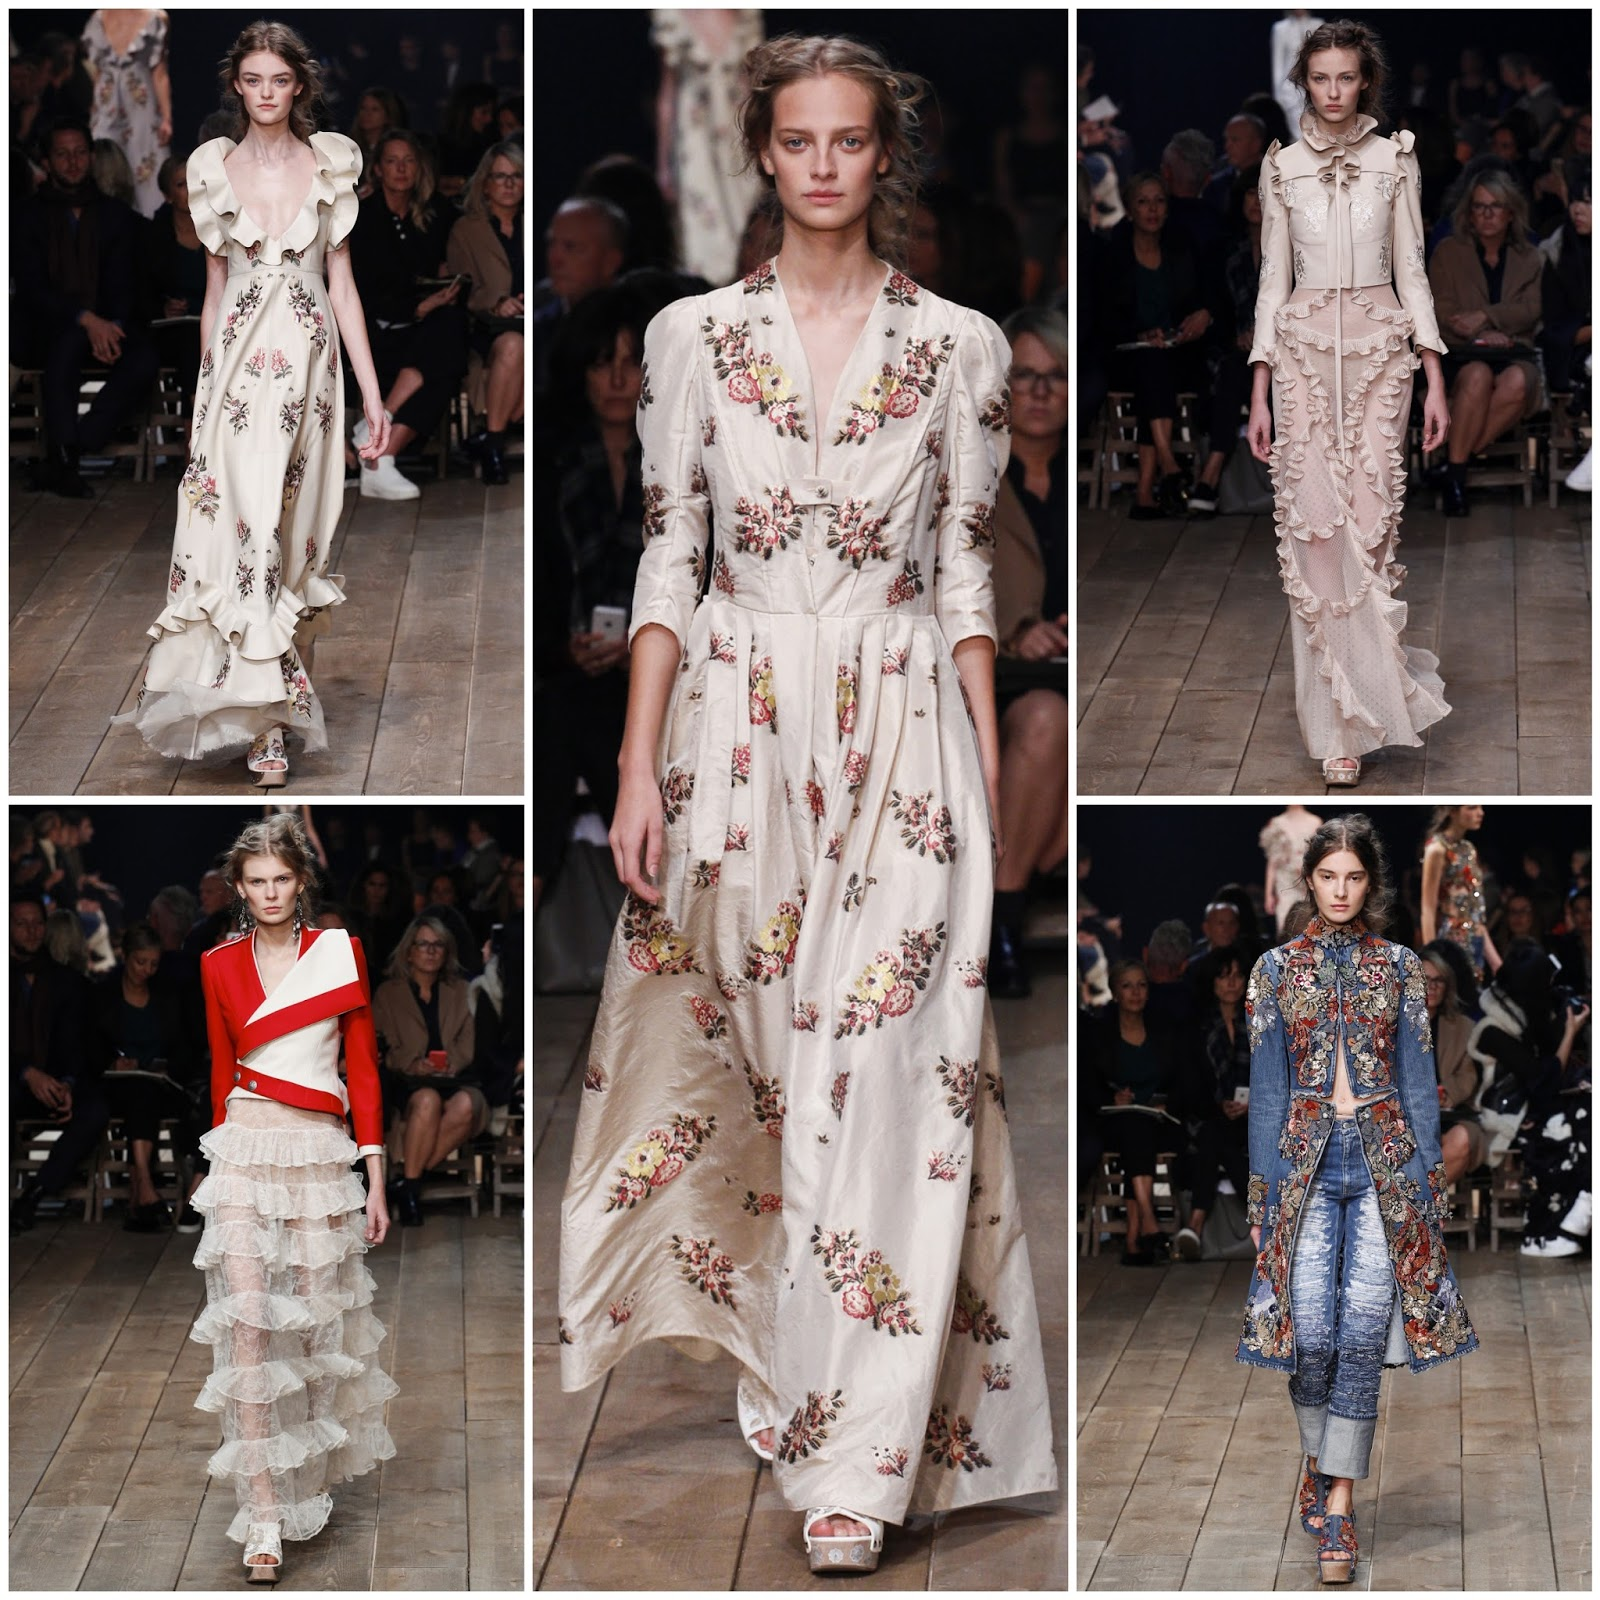 Watch Alexander McQueen SpringSummer 2014 RTW – Paris Fashion Week video